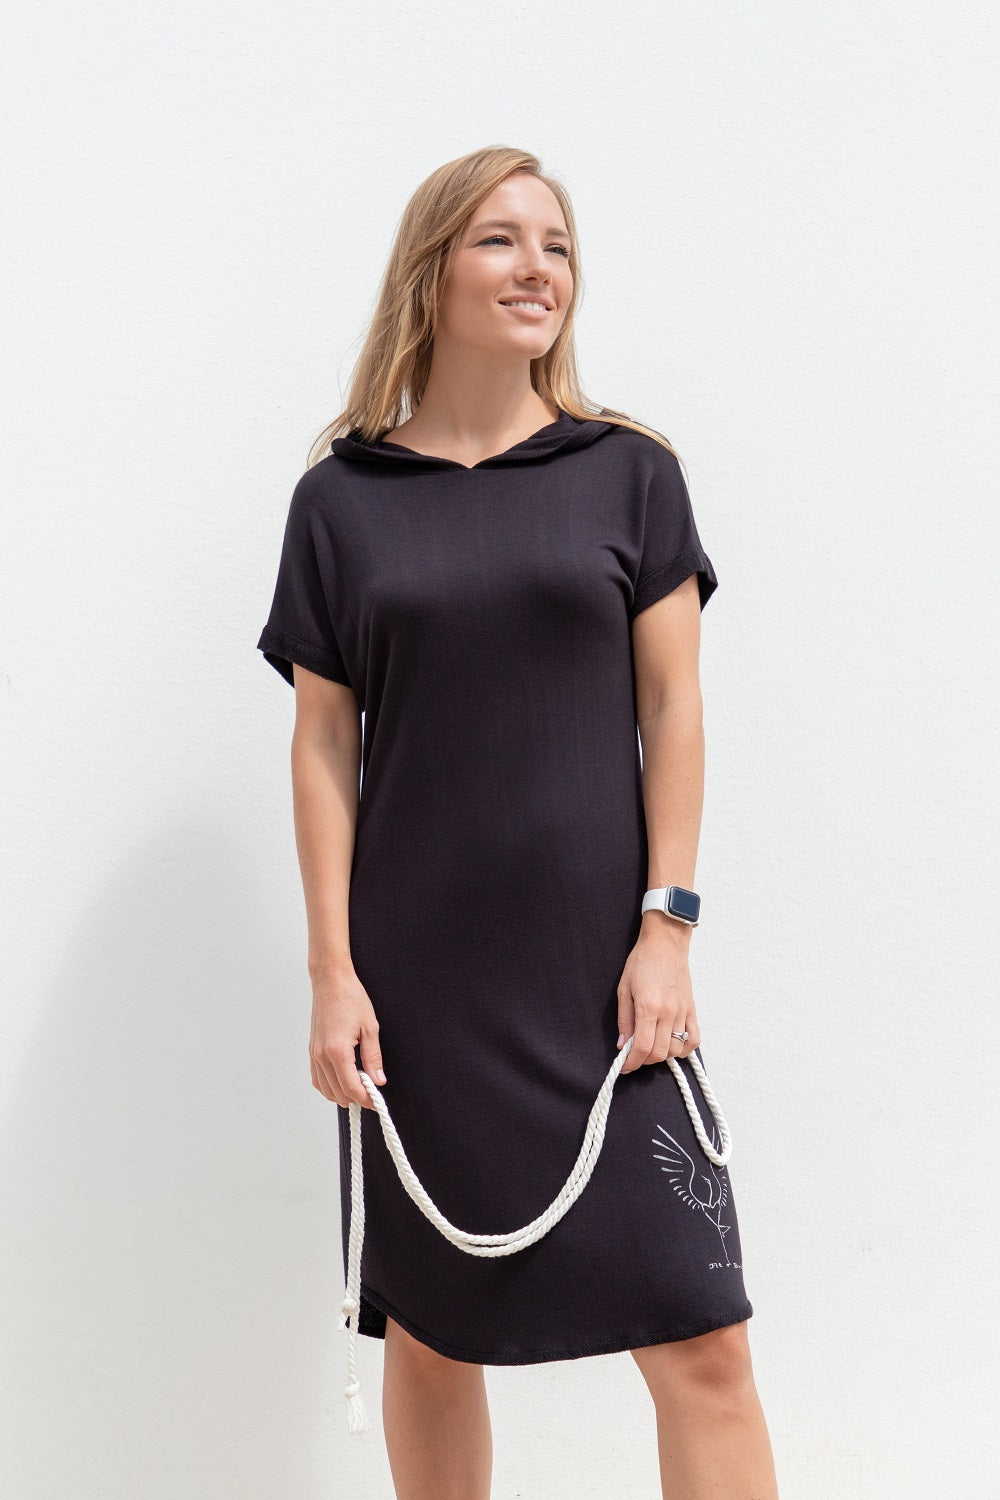 Tunic Dress FIT BIRD Black